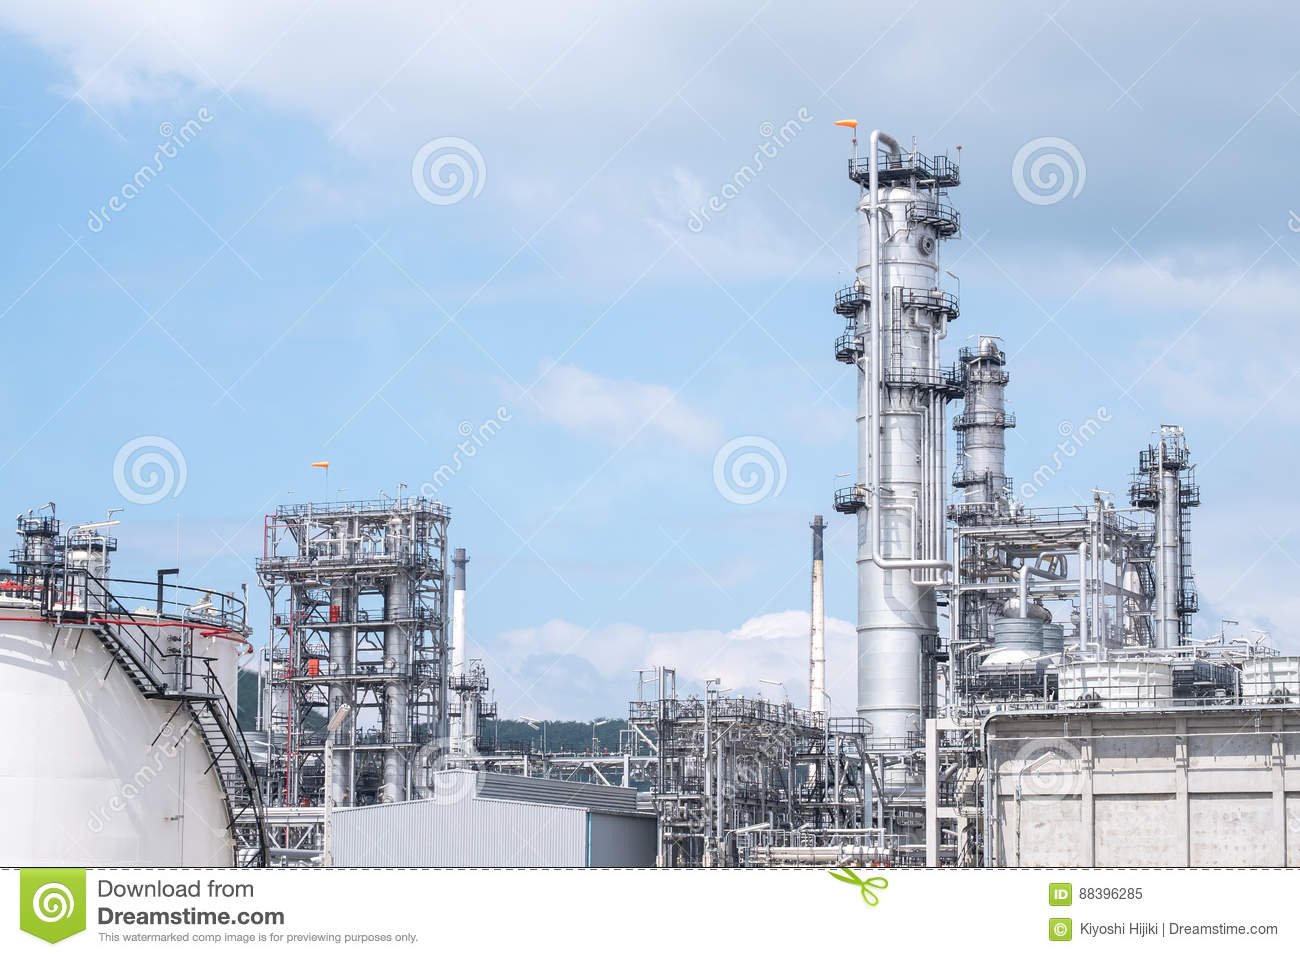 Oil refinery plant. Power and energy